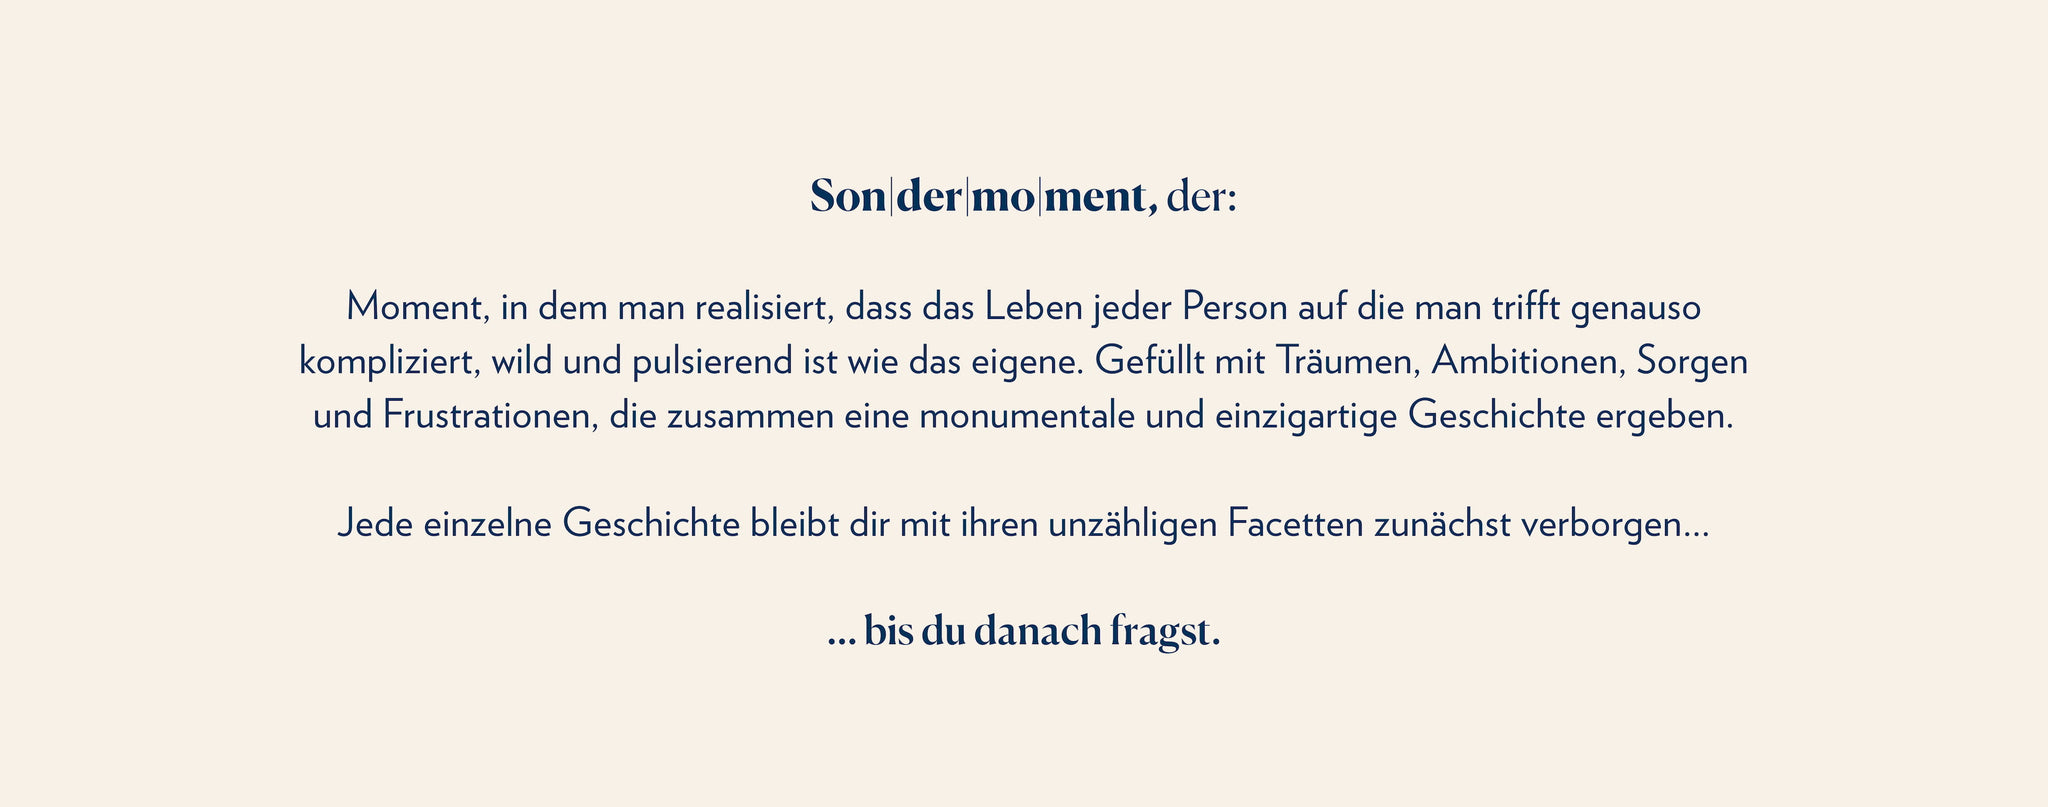 Sondermoment Definition German